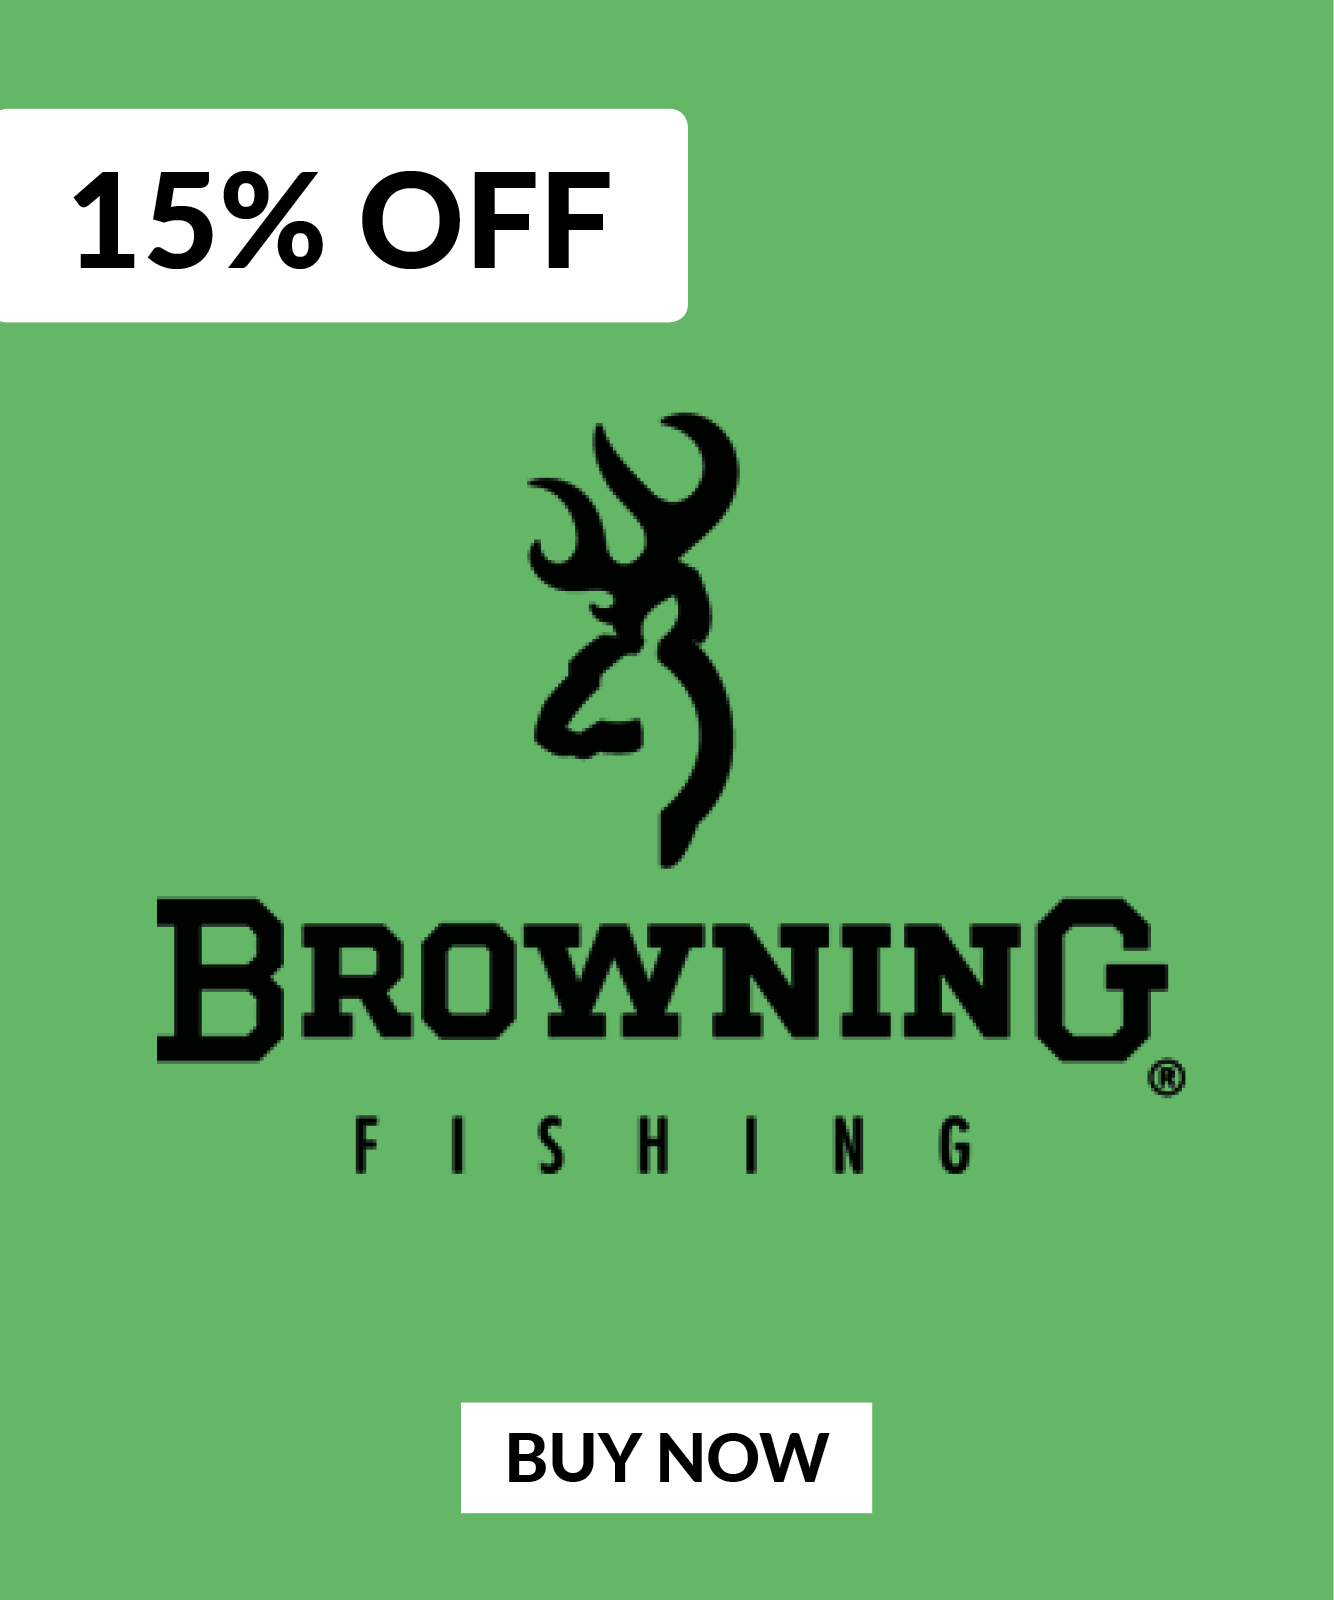 15% OFF Browning